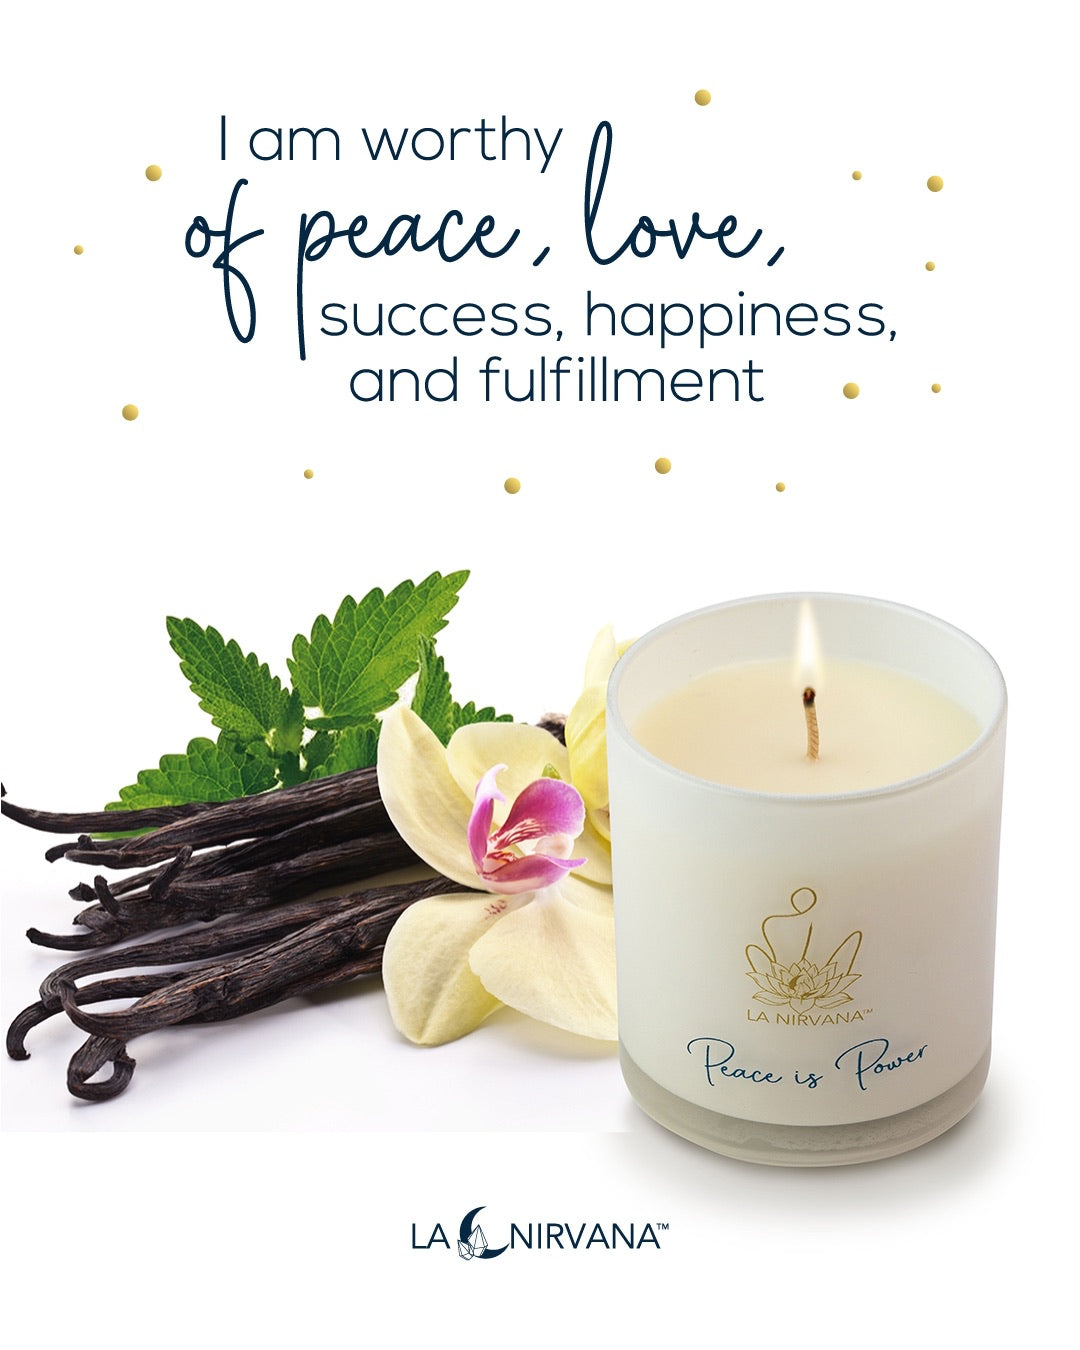 Peace is Power || Patchouli, Vanilla & Musk Scented Candle